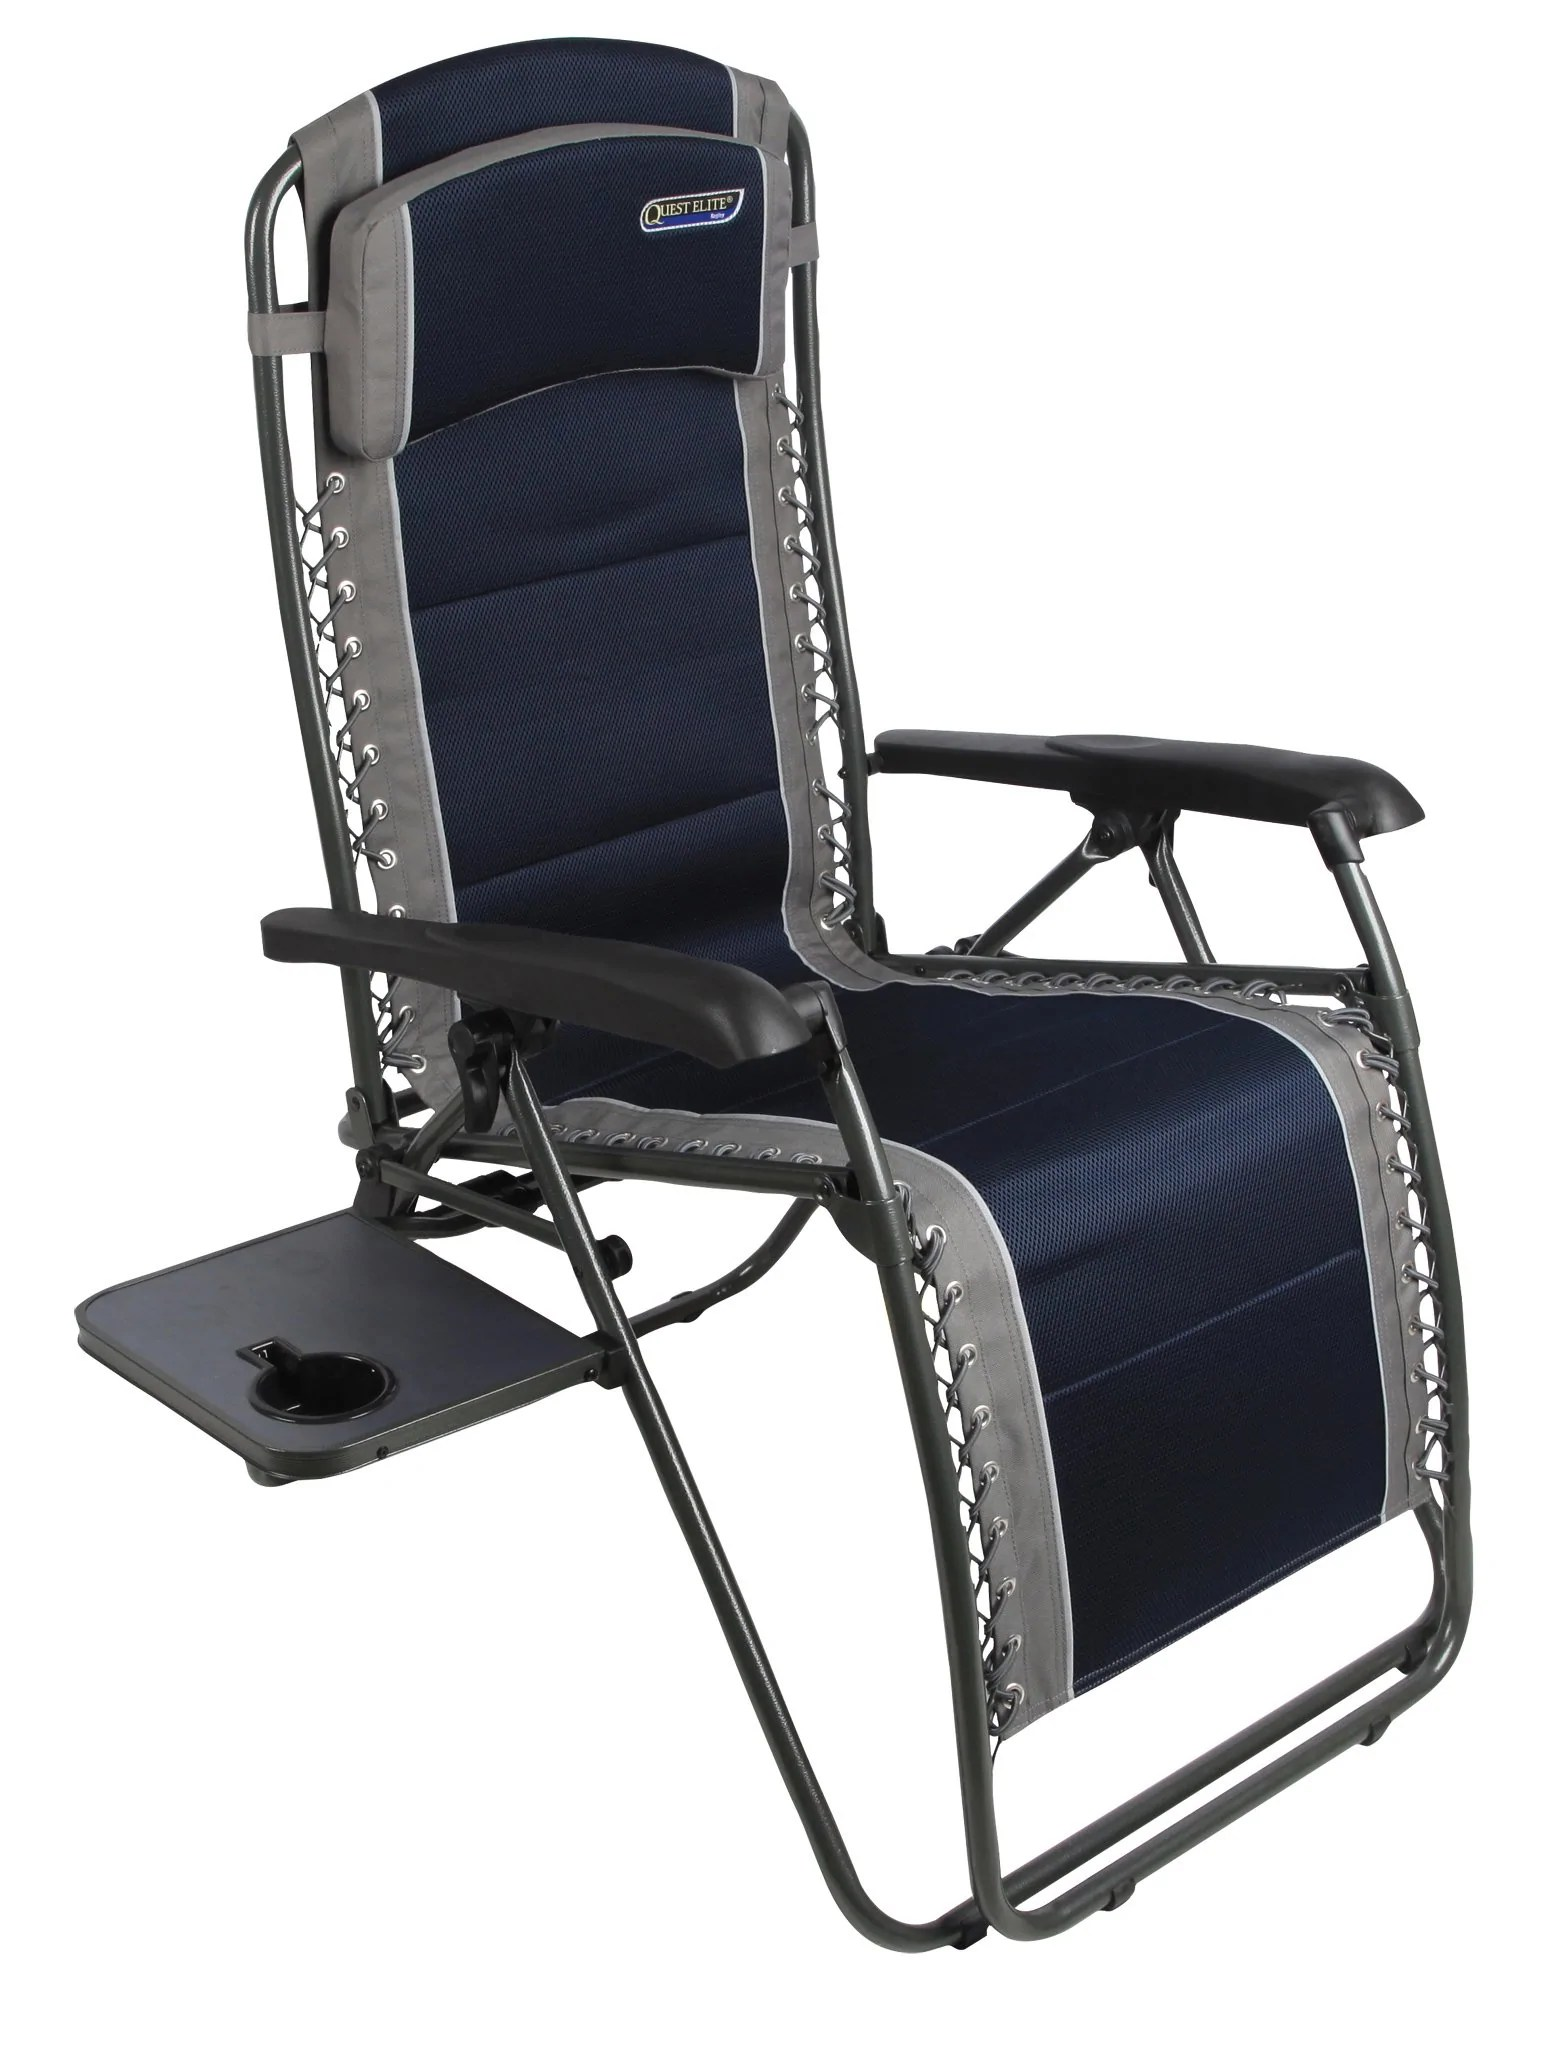 Quest Elite Ragley Pro Relaxer Chair with Side Table